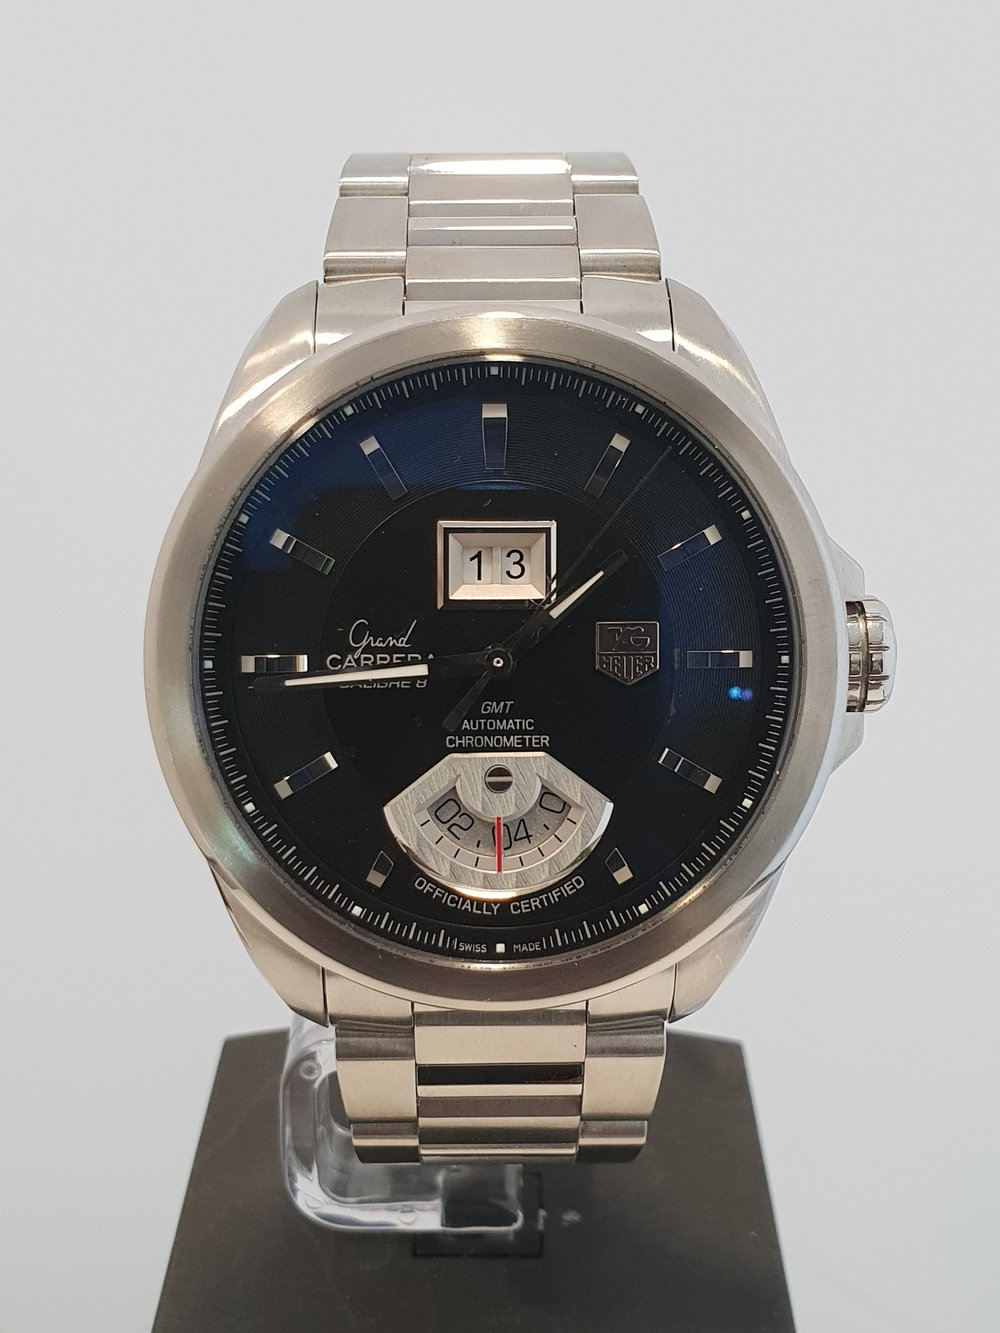 Tag Carrerra GMT   Model Number: WAV5111  Box & Papers, December 2007  Stock Code: Y220  New Price: £3600 Our Price: £1800